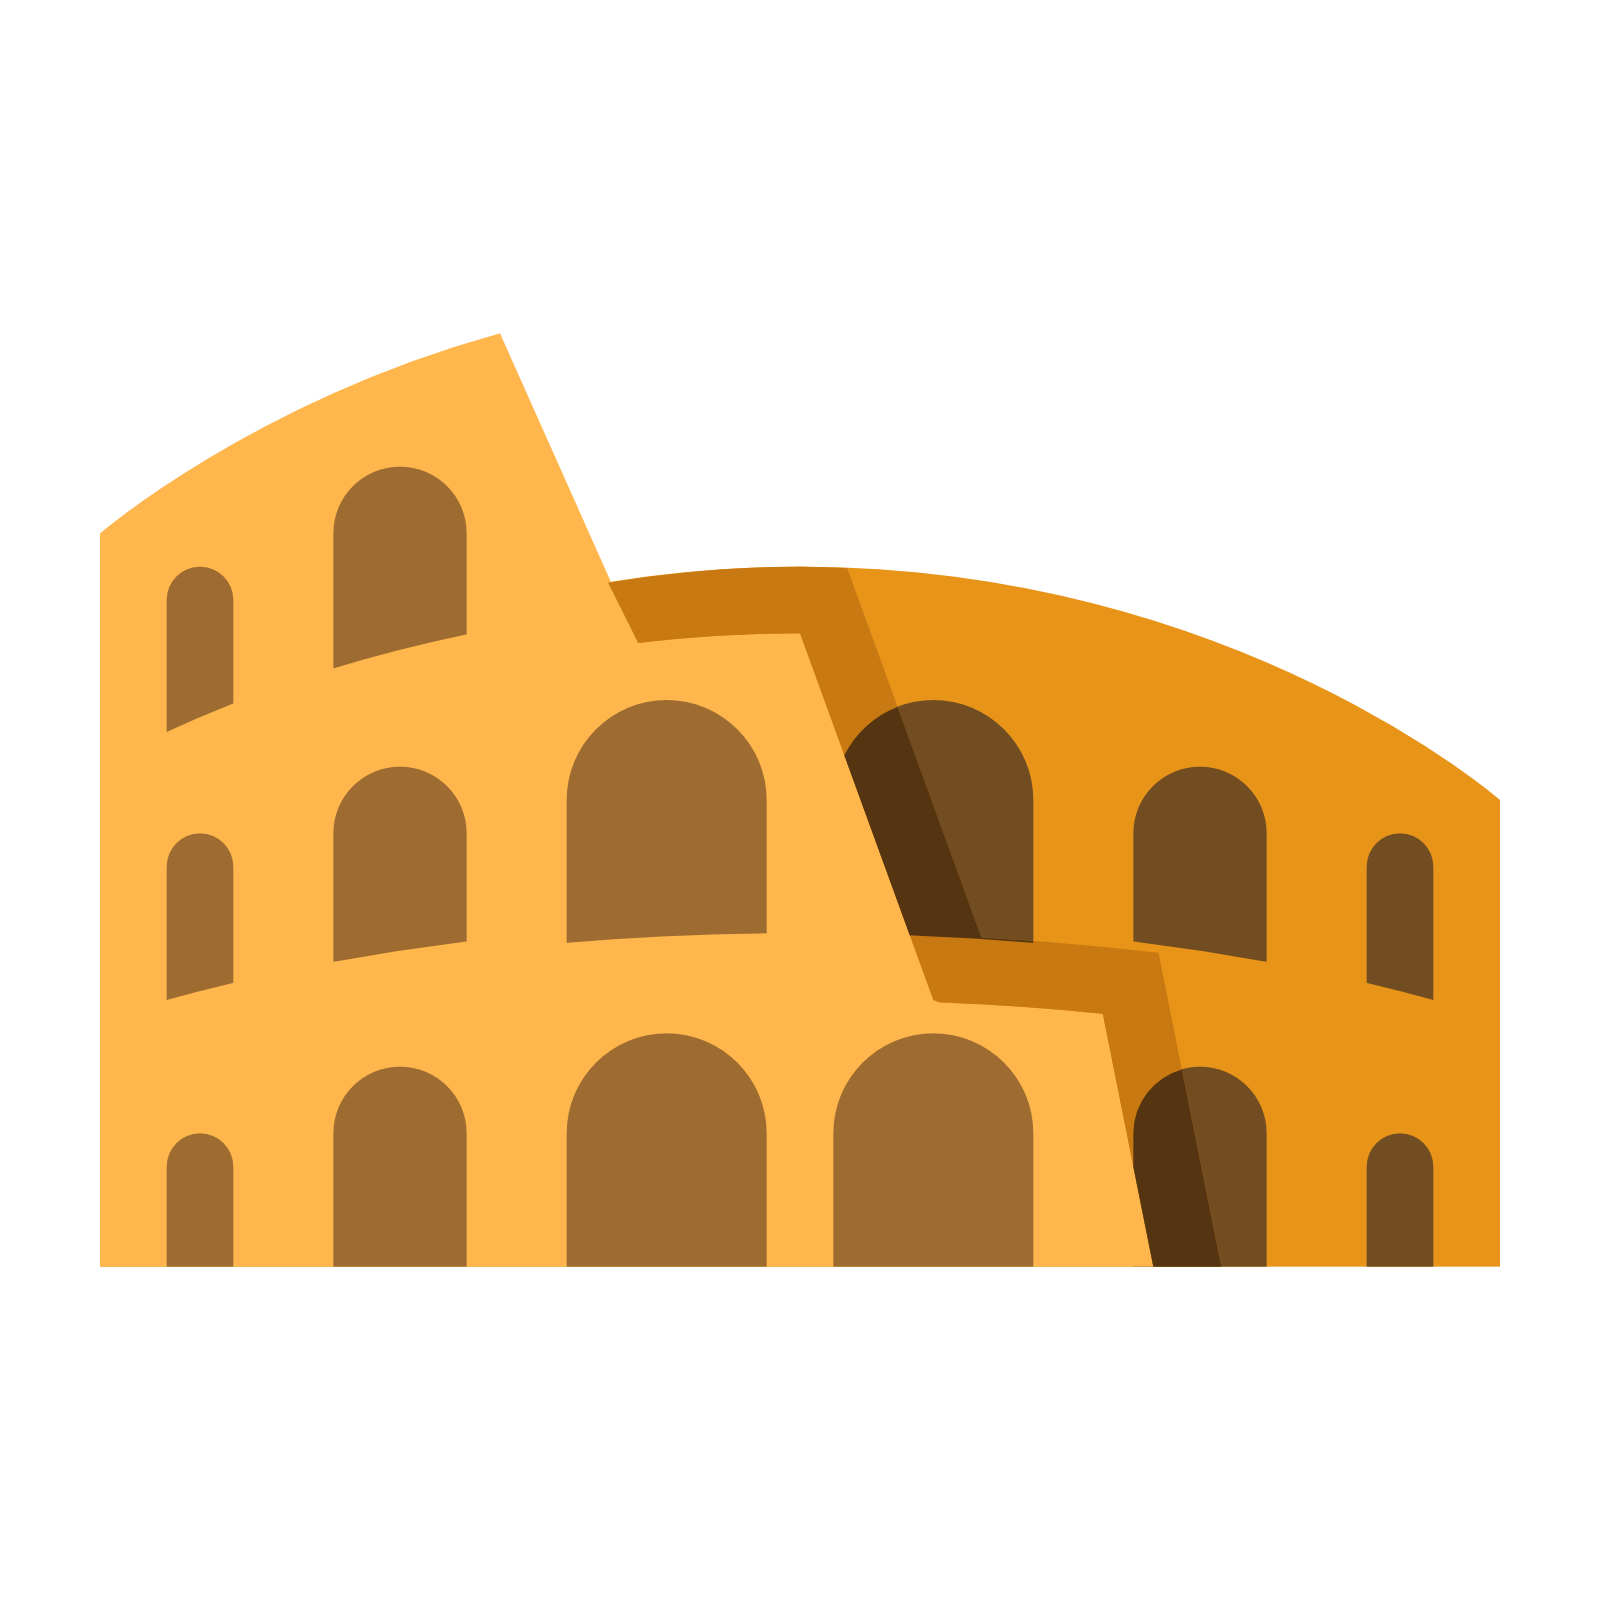 Gladiator clipart colosseum Gladiator Icons8' for at Free